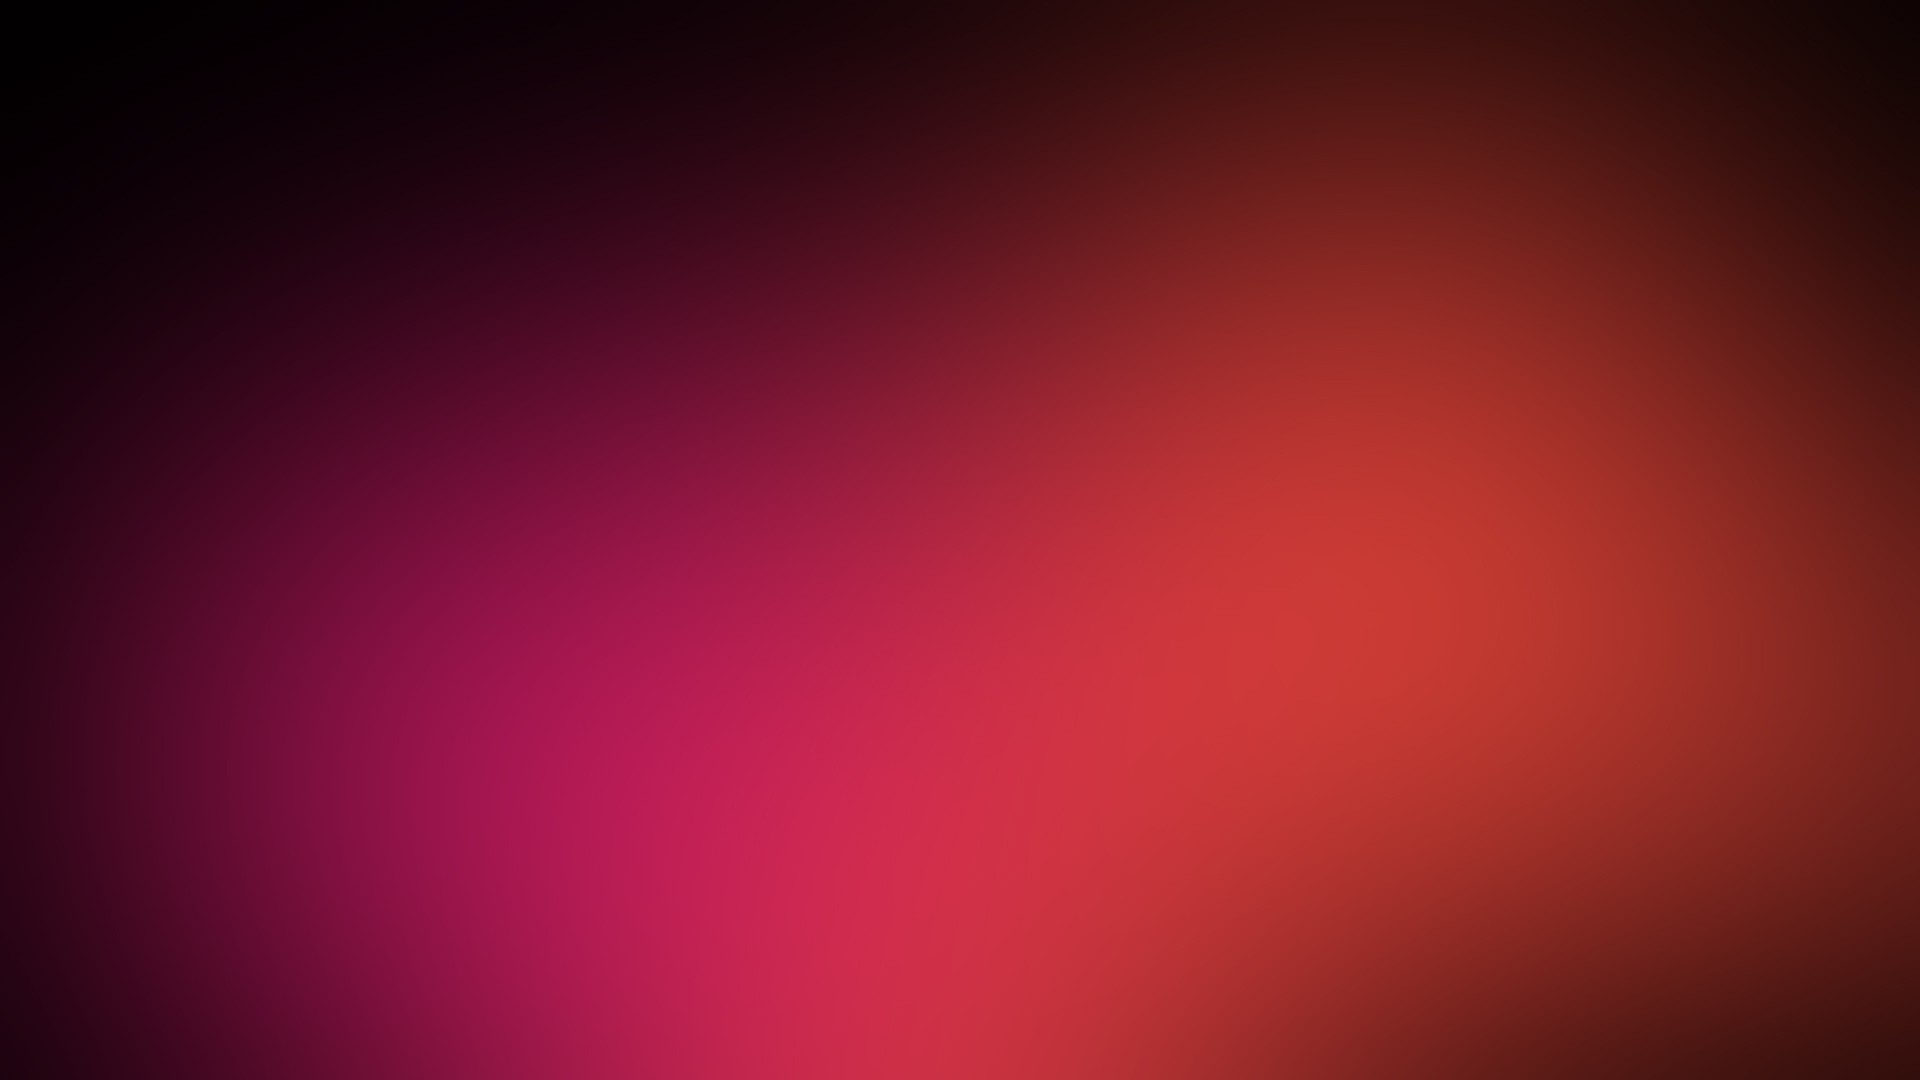 1920x1080 Red Pink Wallpaper  Red, Pink, Patterns, Textures, Gaussian .